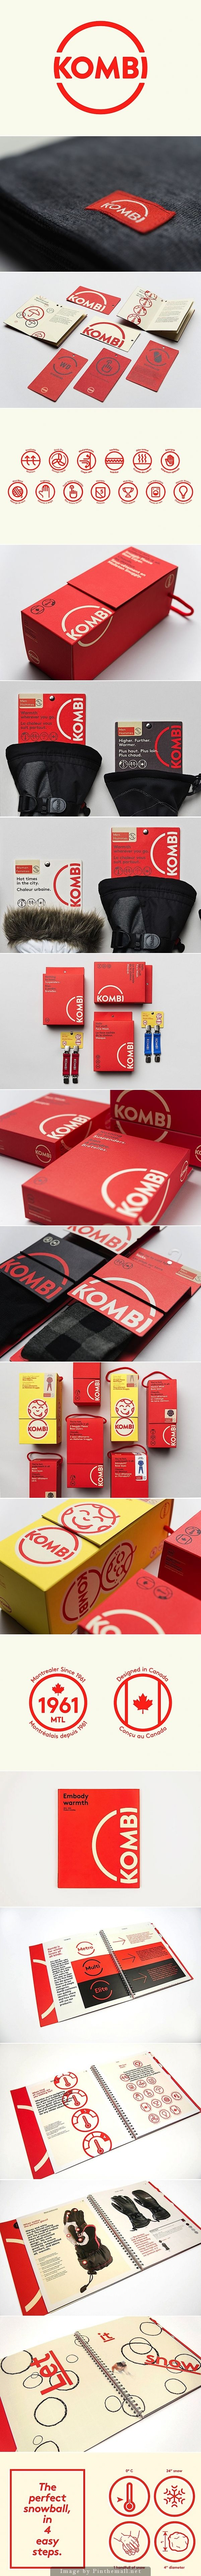 Love Kombi product identity, packaging branding by Polygraph PD